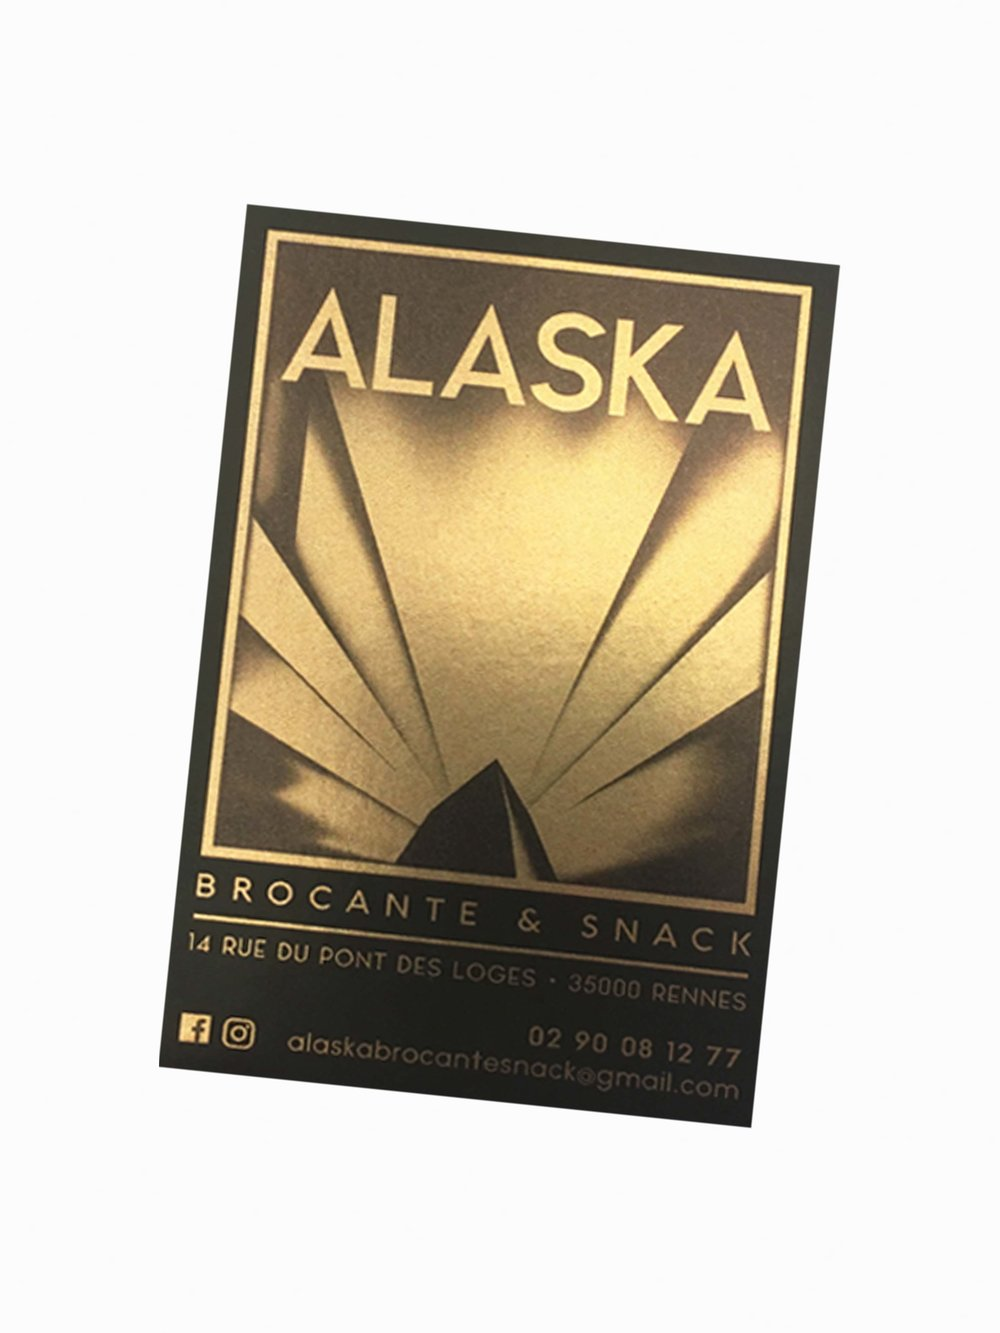 Alaska, coffee shop brocante | www.theflyingflour.com